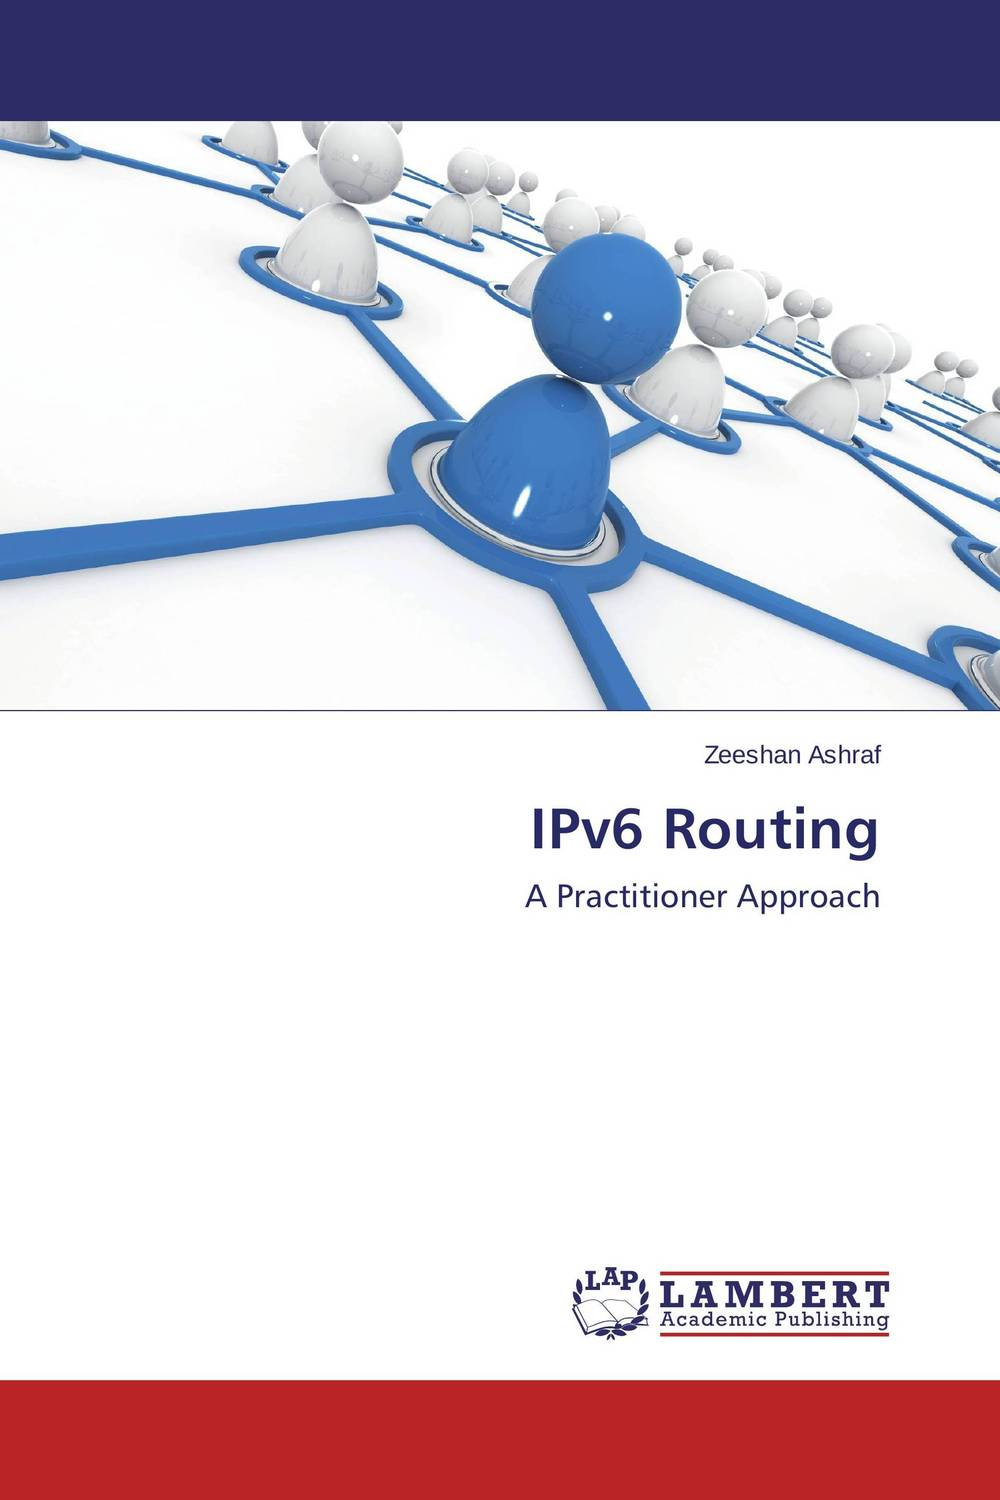 IPv6 Routing the next step guide to building startup fina